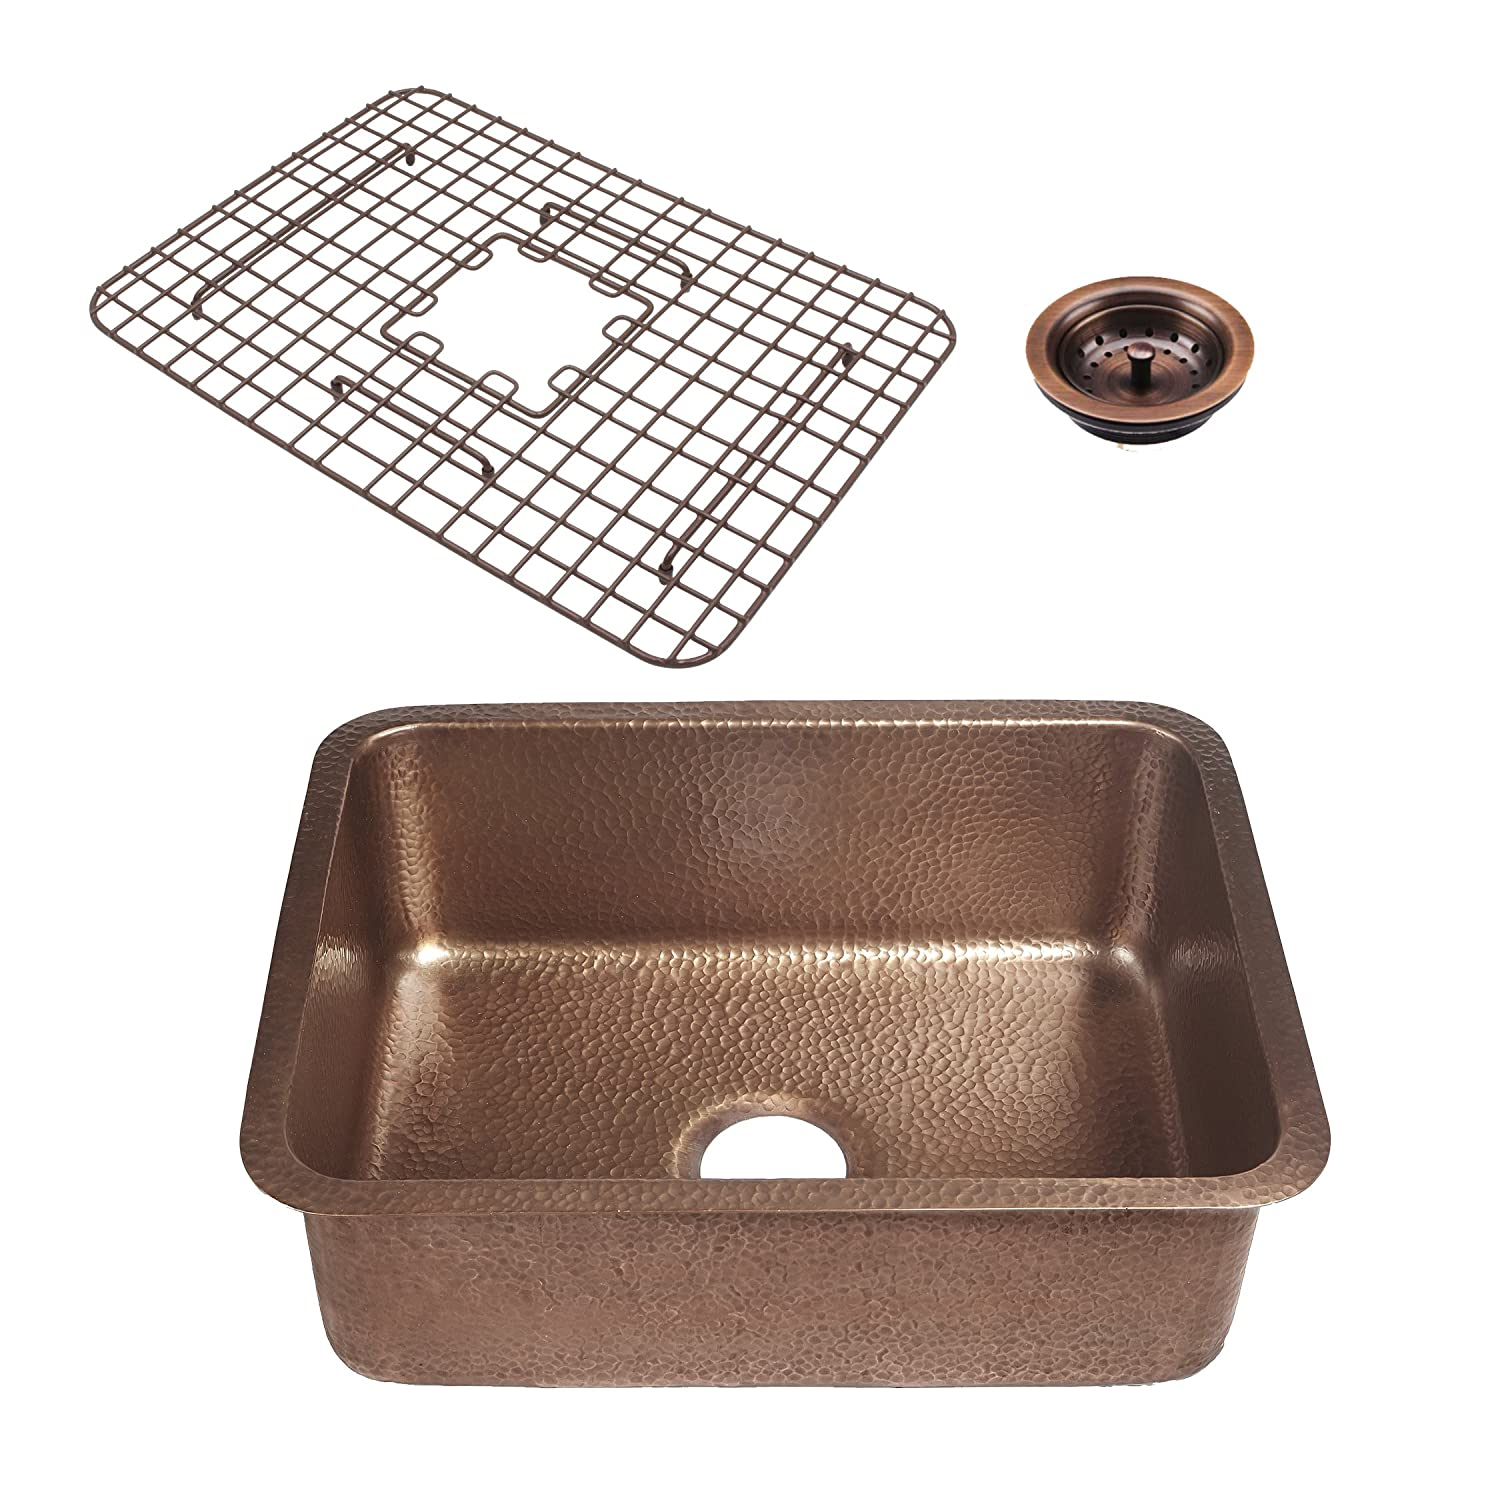 Sinkology SK201-23AC-WG-B Renoir with Fuller Grid and Basket Strainer Undermount Kitchen Sink, 23 in x 17.25 in x 8 in in, Antique Copper